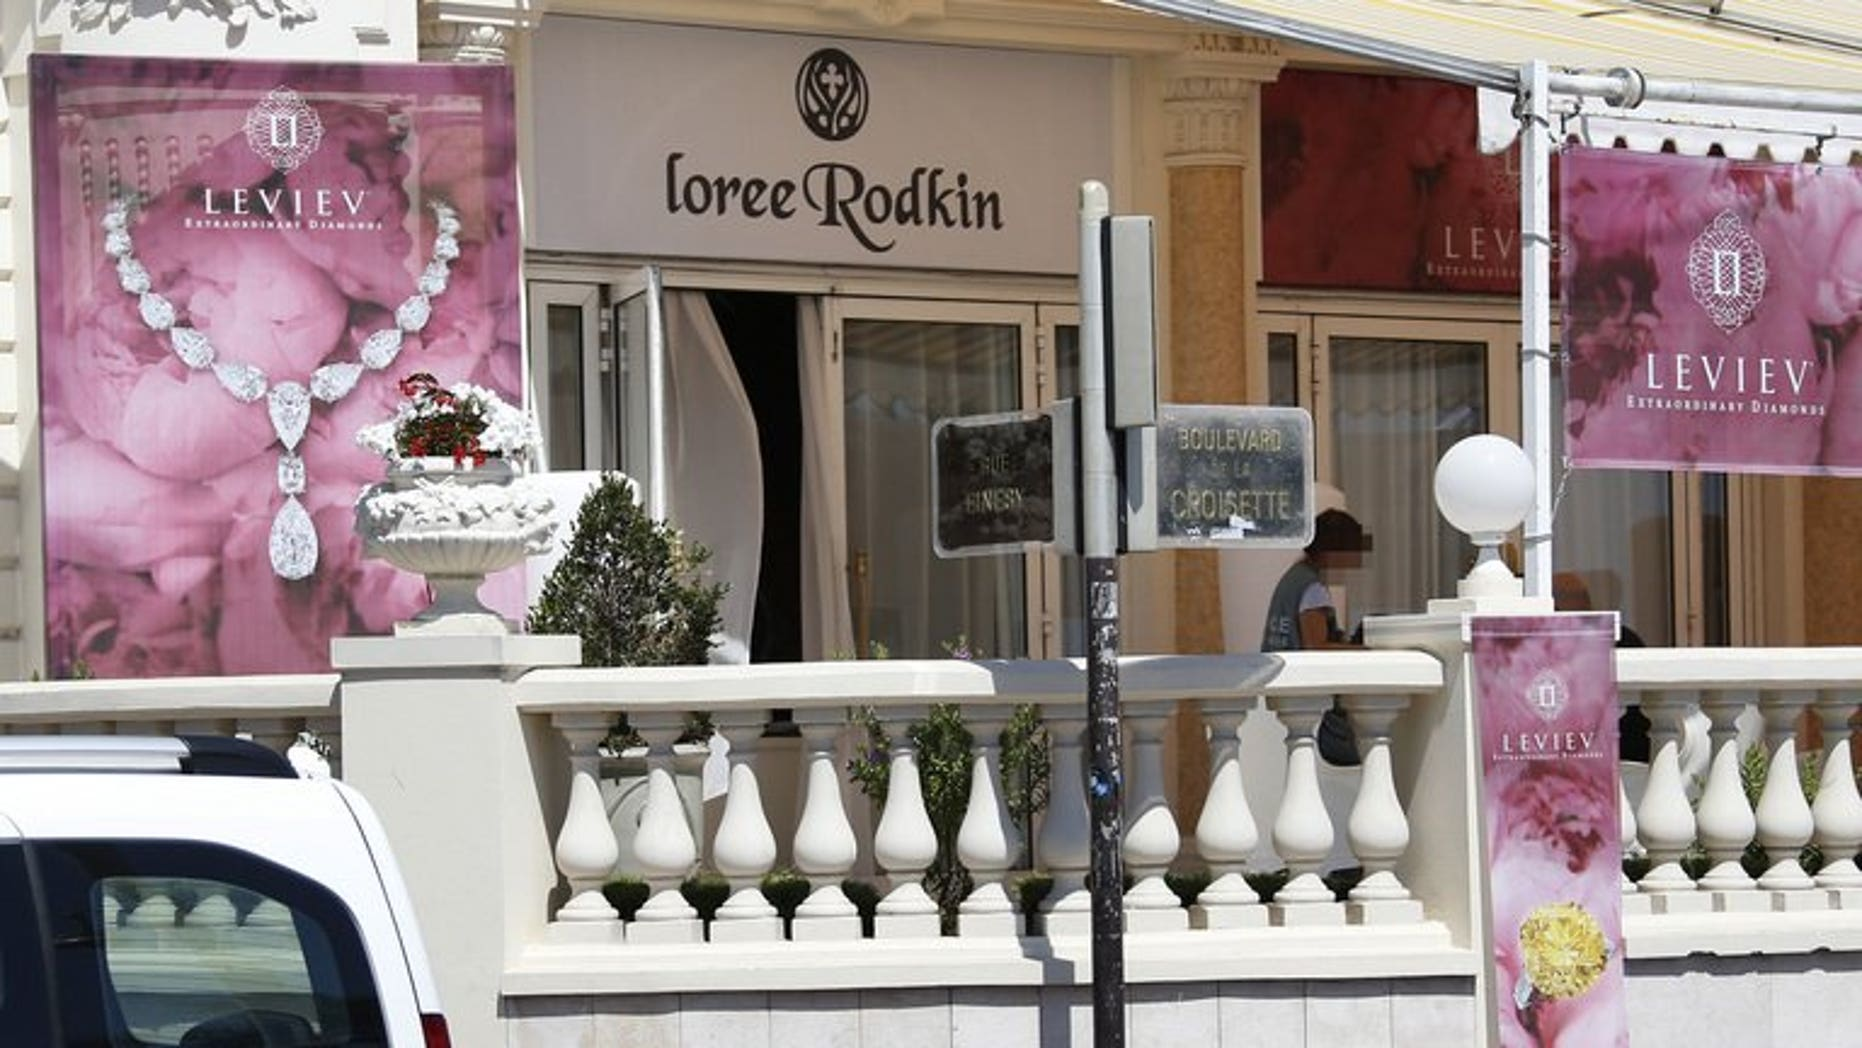 A French policeman investigates outside the Carlton Hotel on July 28, 2013 in the French Riviera resort of Cannes, after an armed man held up the jewellery exhibitionmaking away with jewels estimated to be worth about 40 million euros ($53 million).